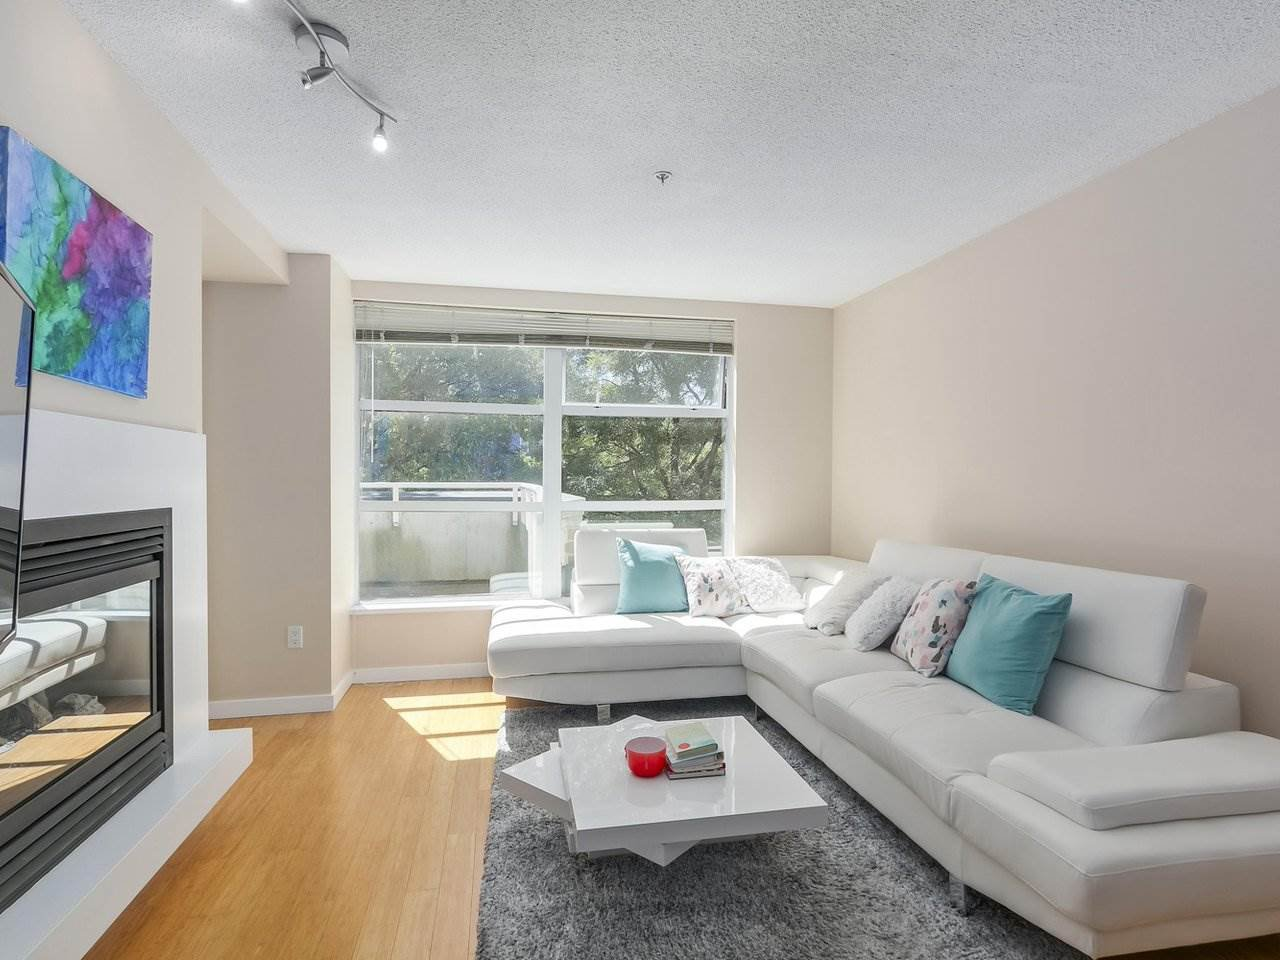 Main Photo: 218 2768 CRANBERRY DRIVE in Vancouver: Kitsilano Condo for sale (Vancouver West)  : MLS®# R2298896